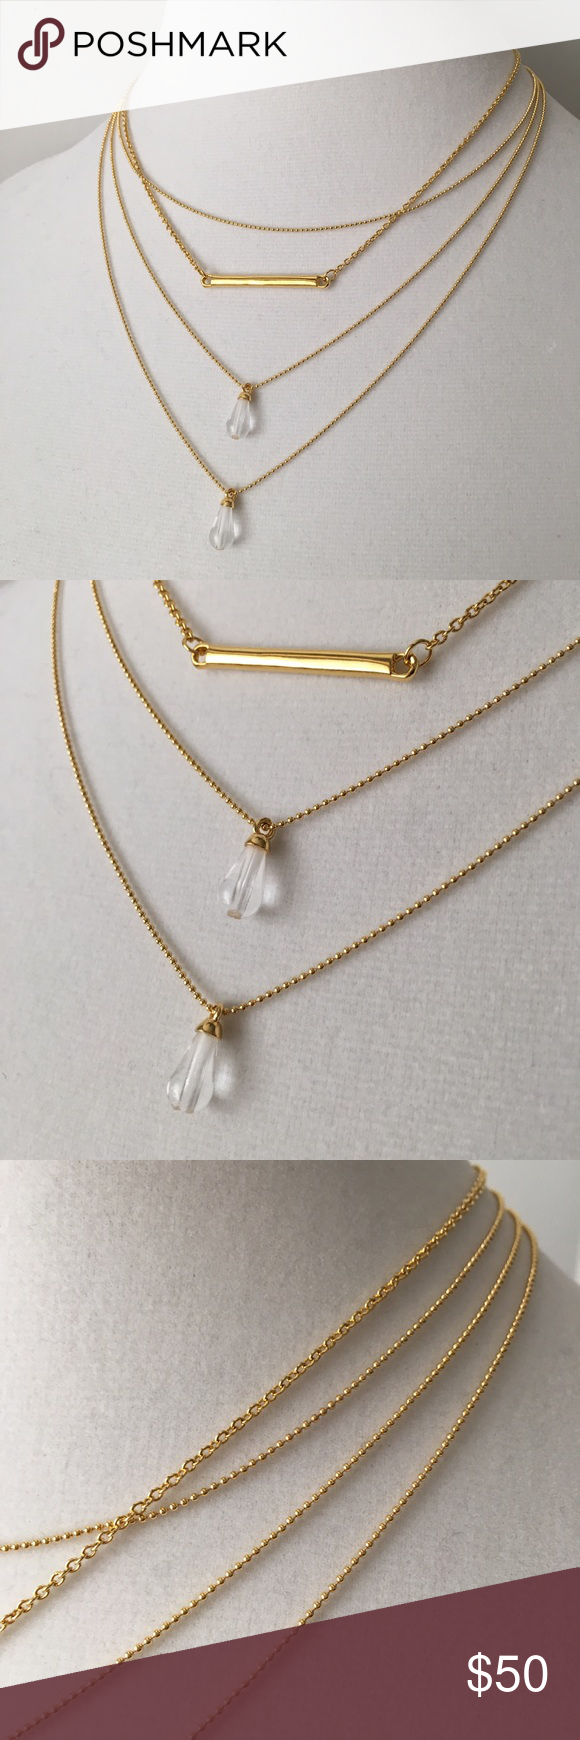 """Sterling Forever Gold/Quartz Illusion Necklace NEW Simply elegant 14K Gold plate chains with Quartz charms. Brand new, with box. About 16-18"""" length, 2"""" drop. Beautiful! Sterling Forever Jewelry Necklaces"""